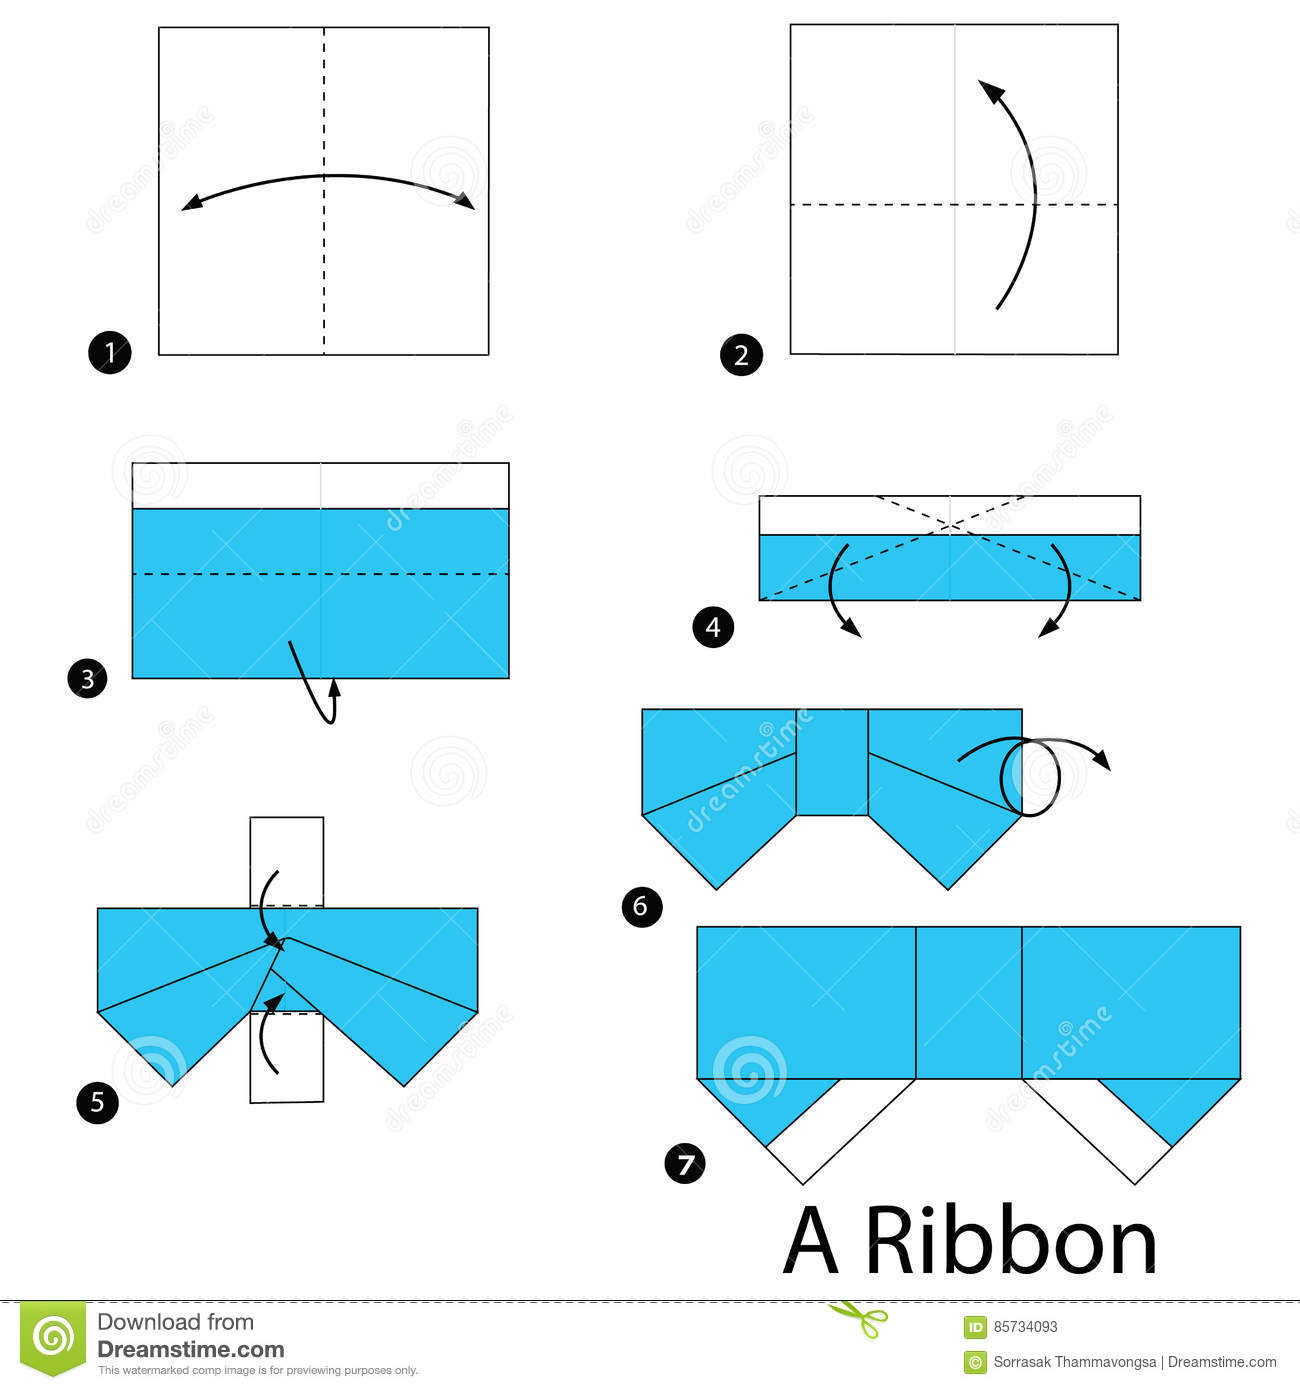 English instructions. I love bows. And now i can teach the kids.